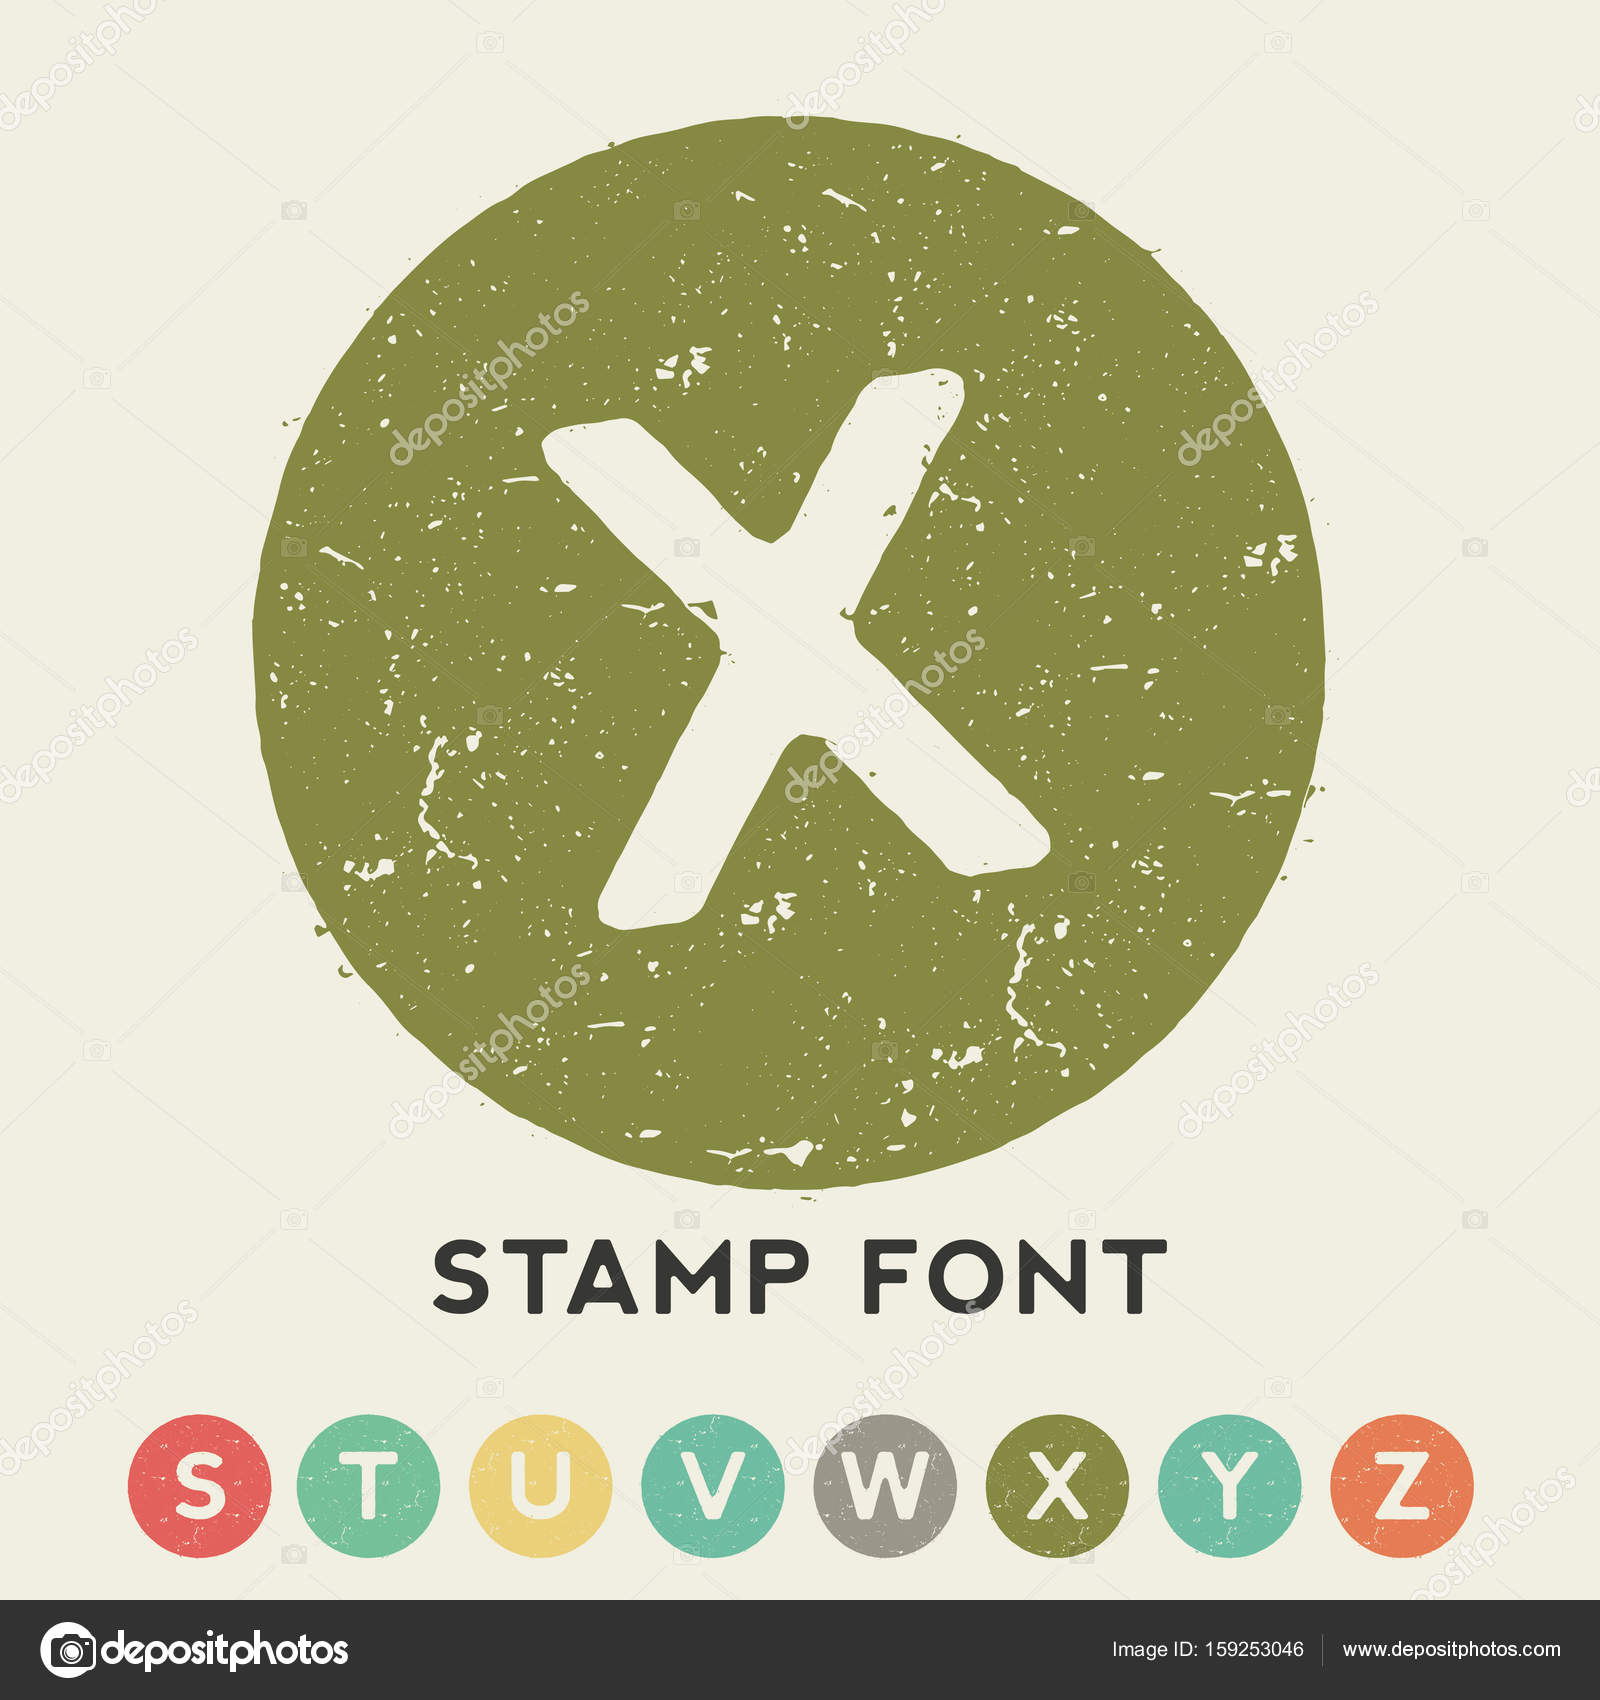 Circular Stamp Font Template With One Big Letter In The Centre Vector Illustration By Antonantipov